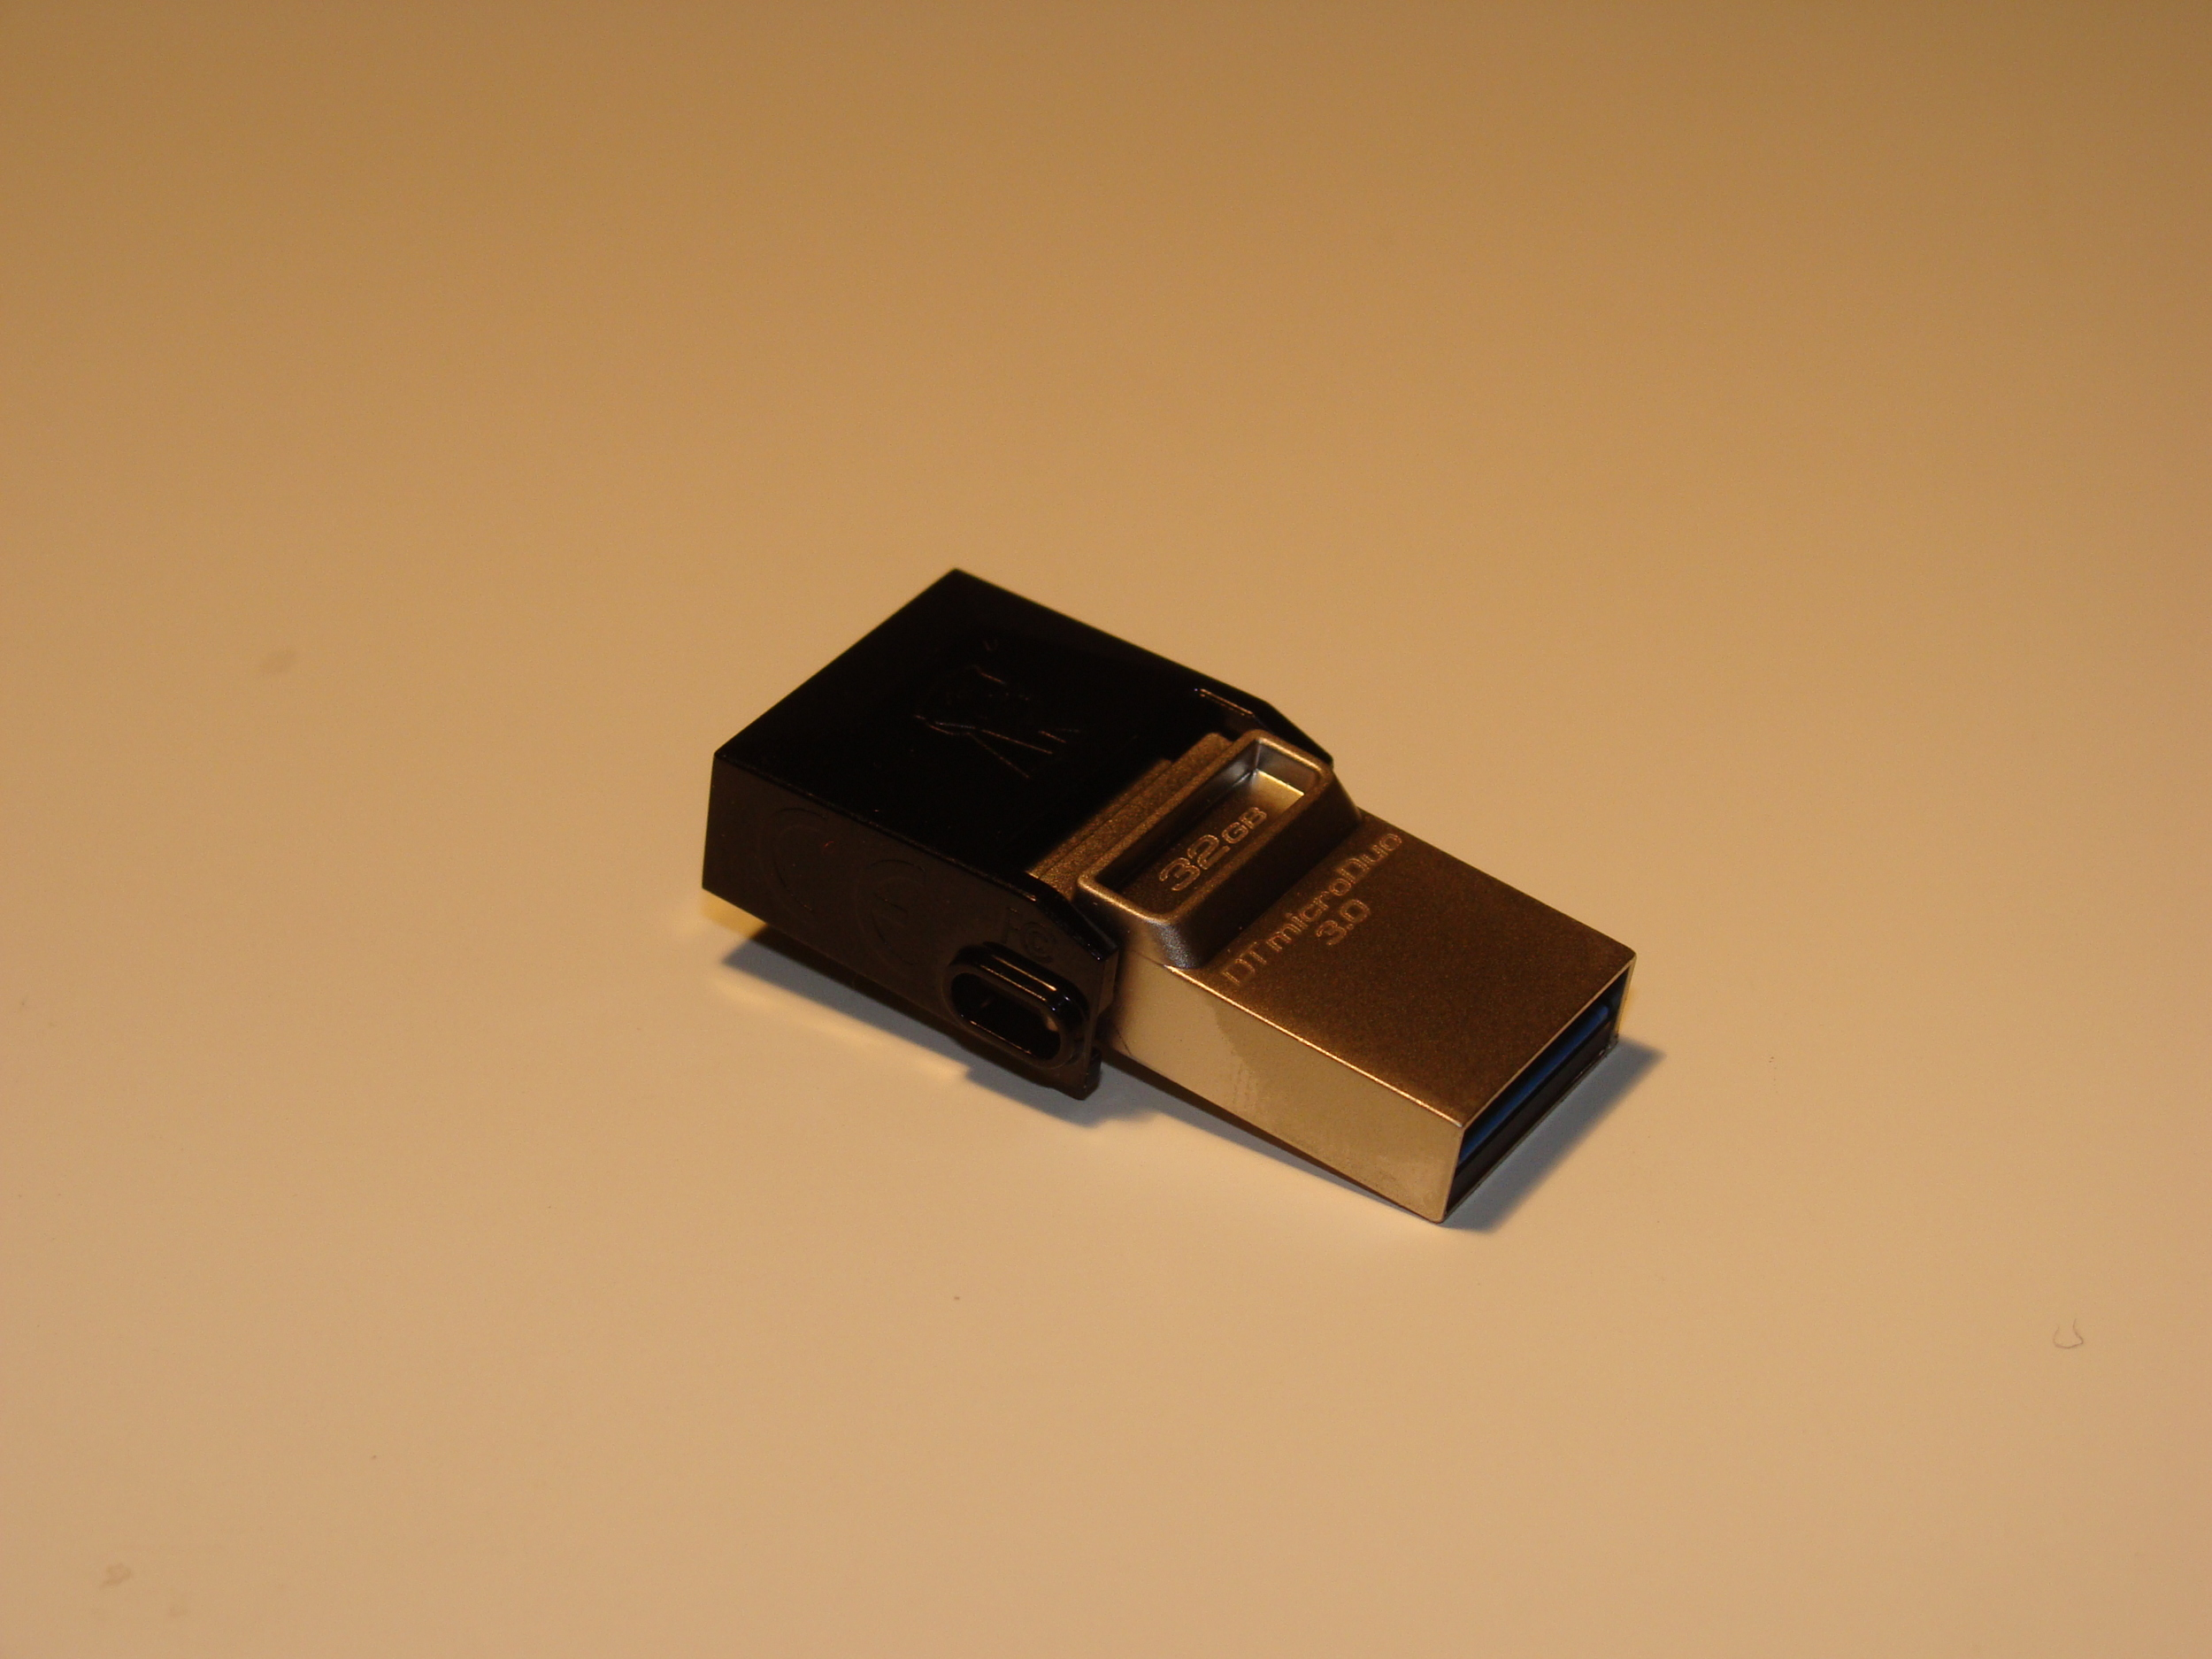 On one end is a standard full sized USB connector